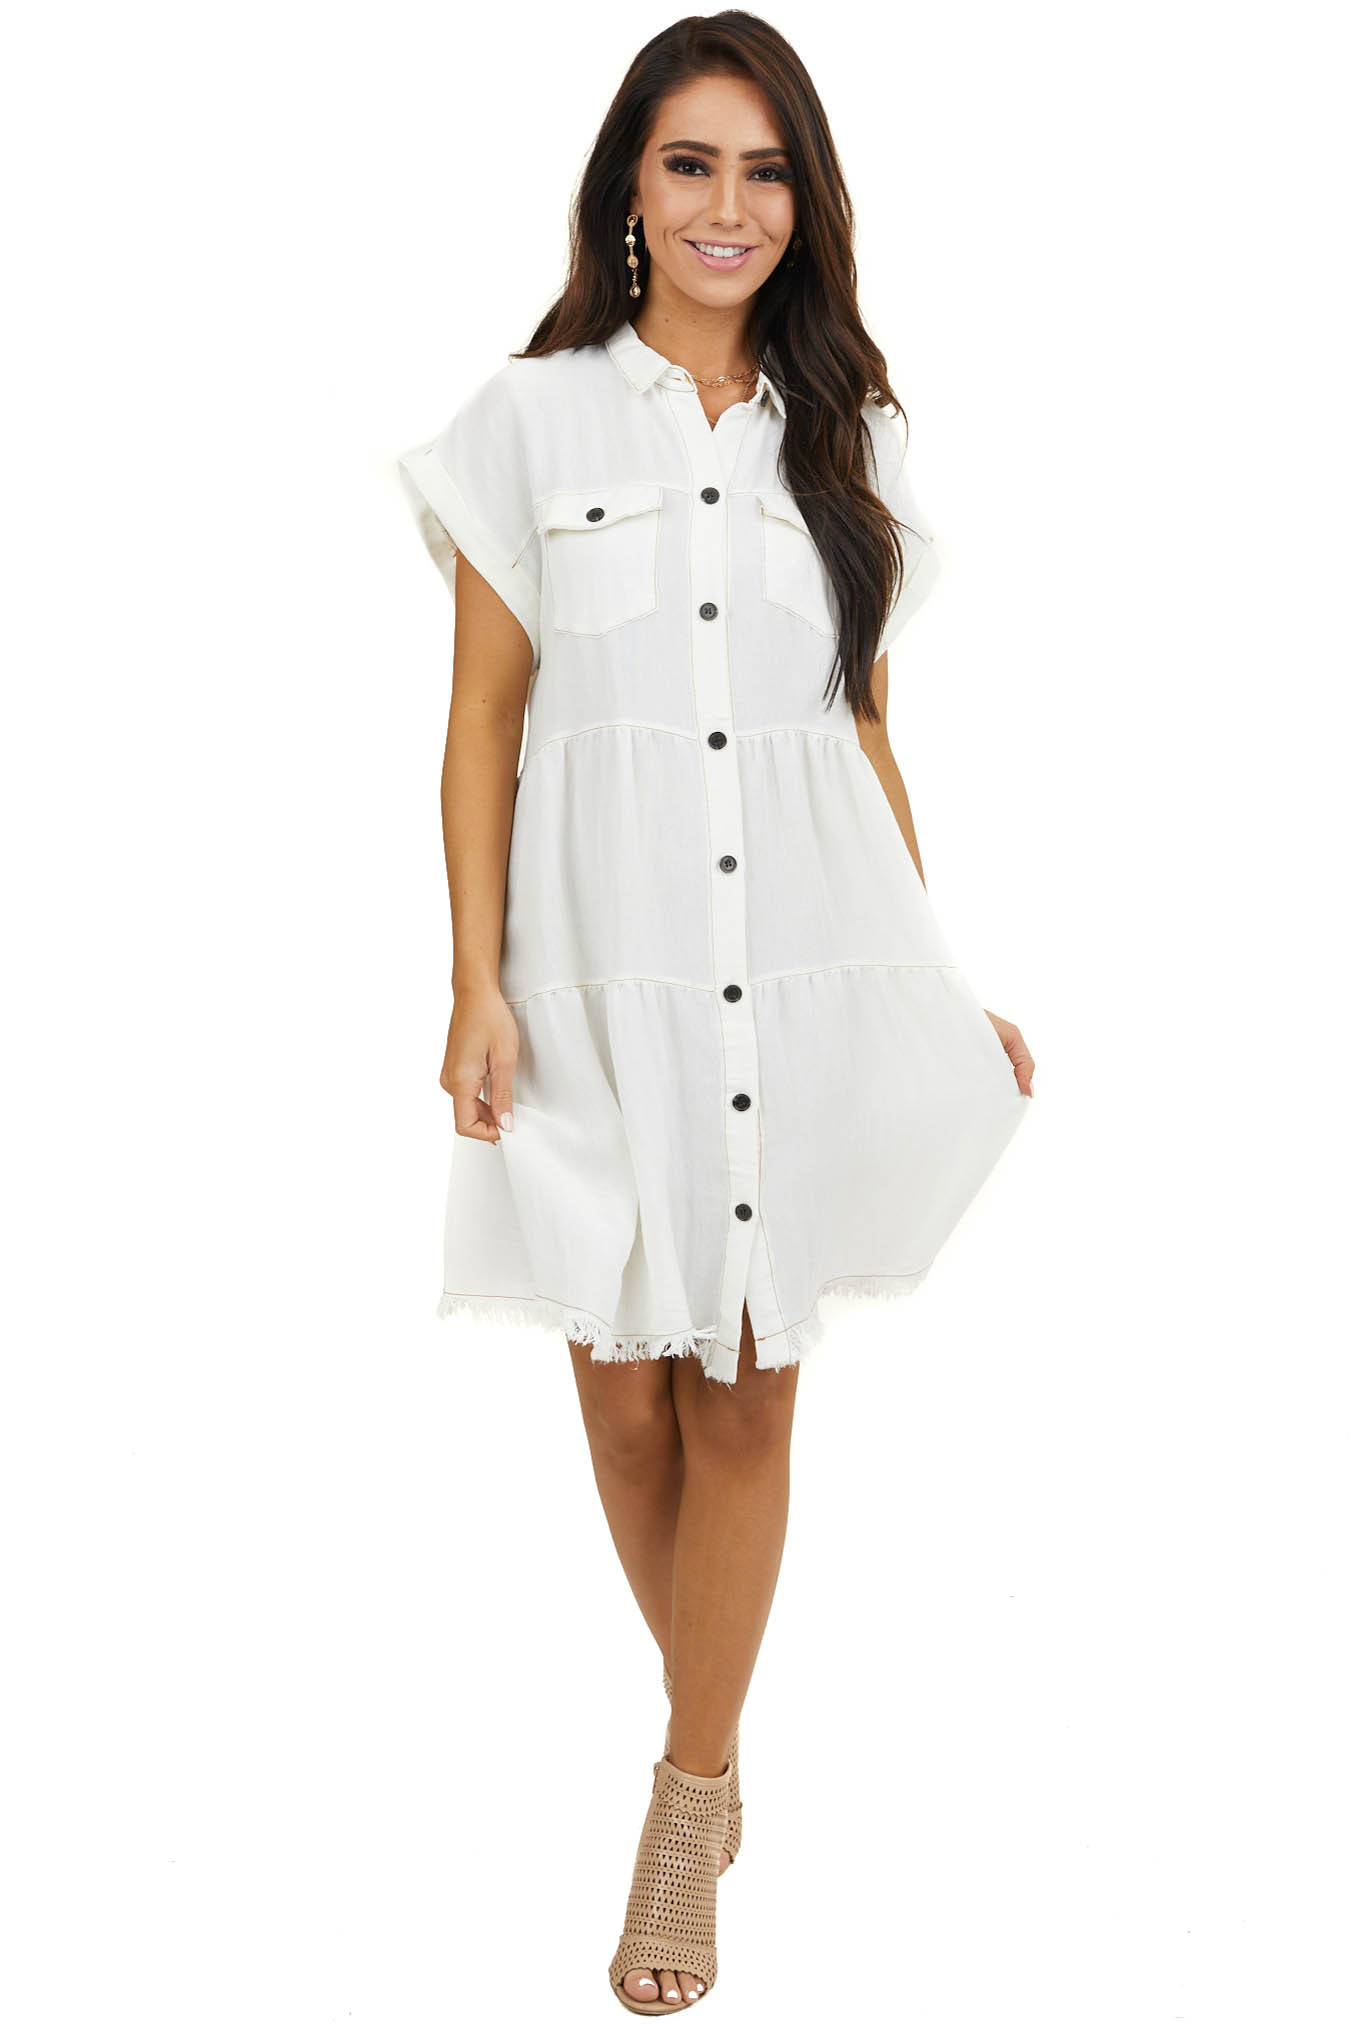 Ivory Button Up Collared Dress with Cuffed Sleeves